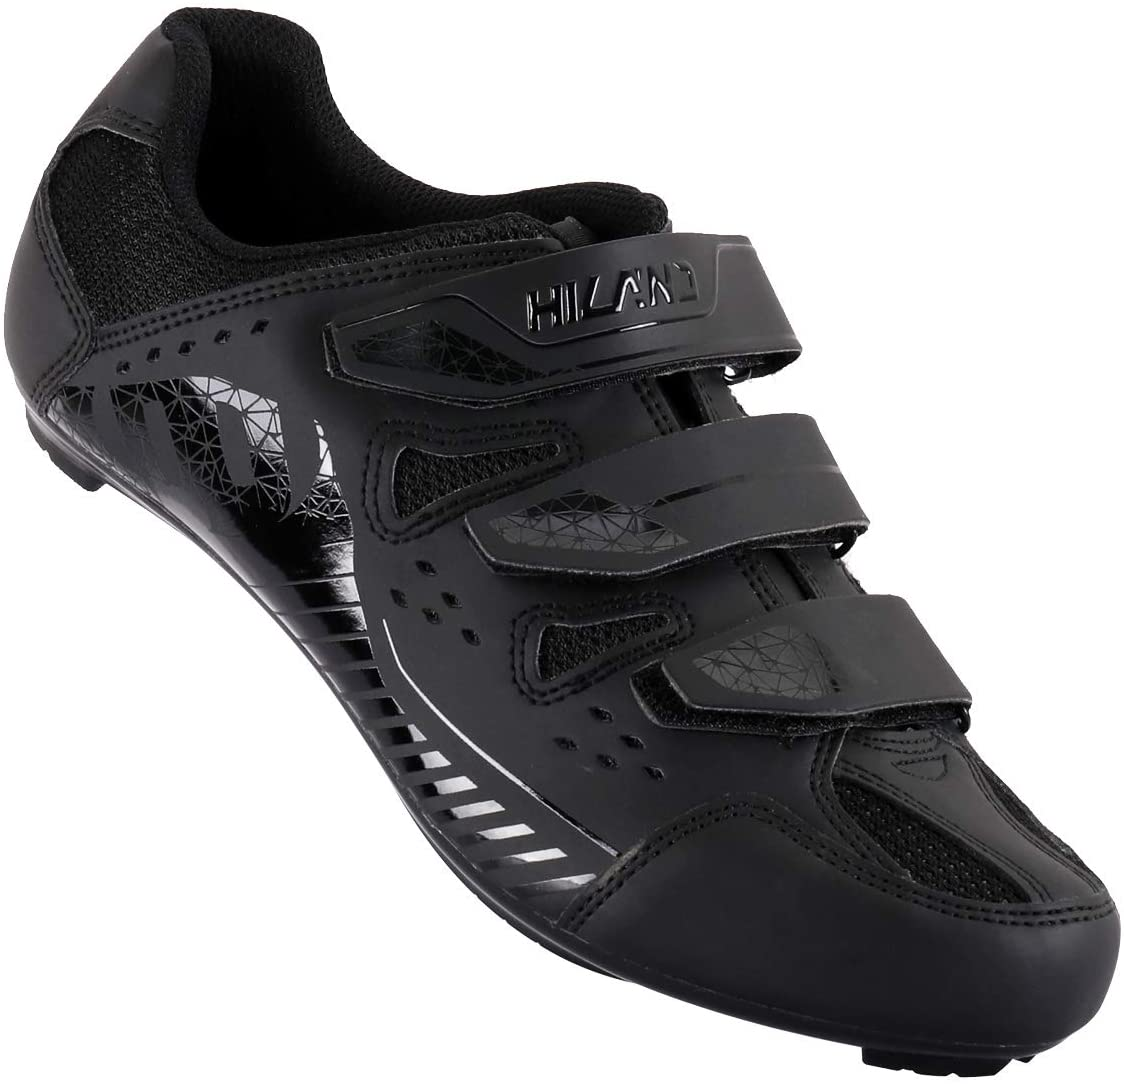 Hiland Road Bike Cycling Shoes Bic Cleated Lock Philadelphia Mall All items free shipping Pedal